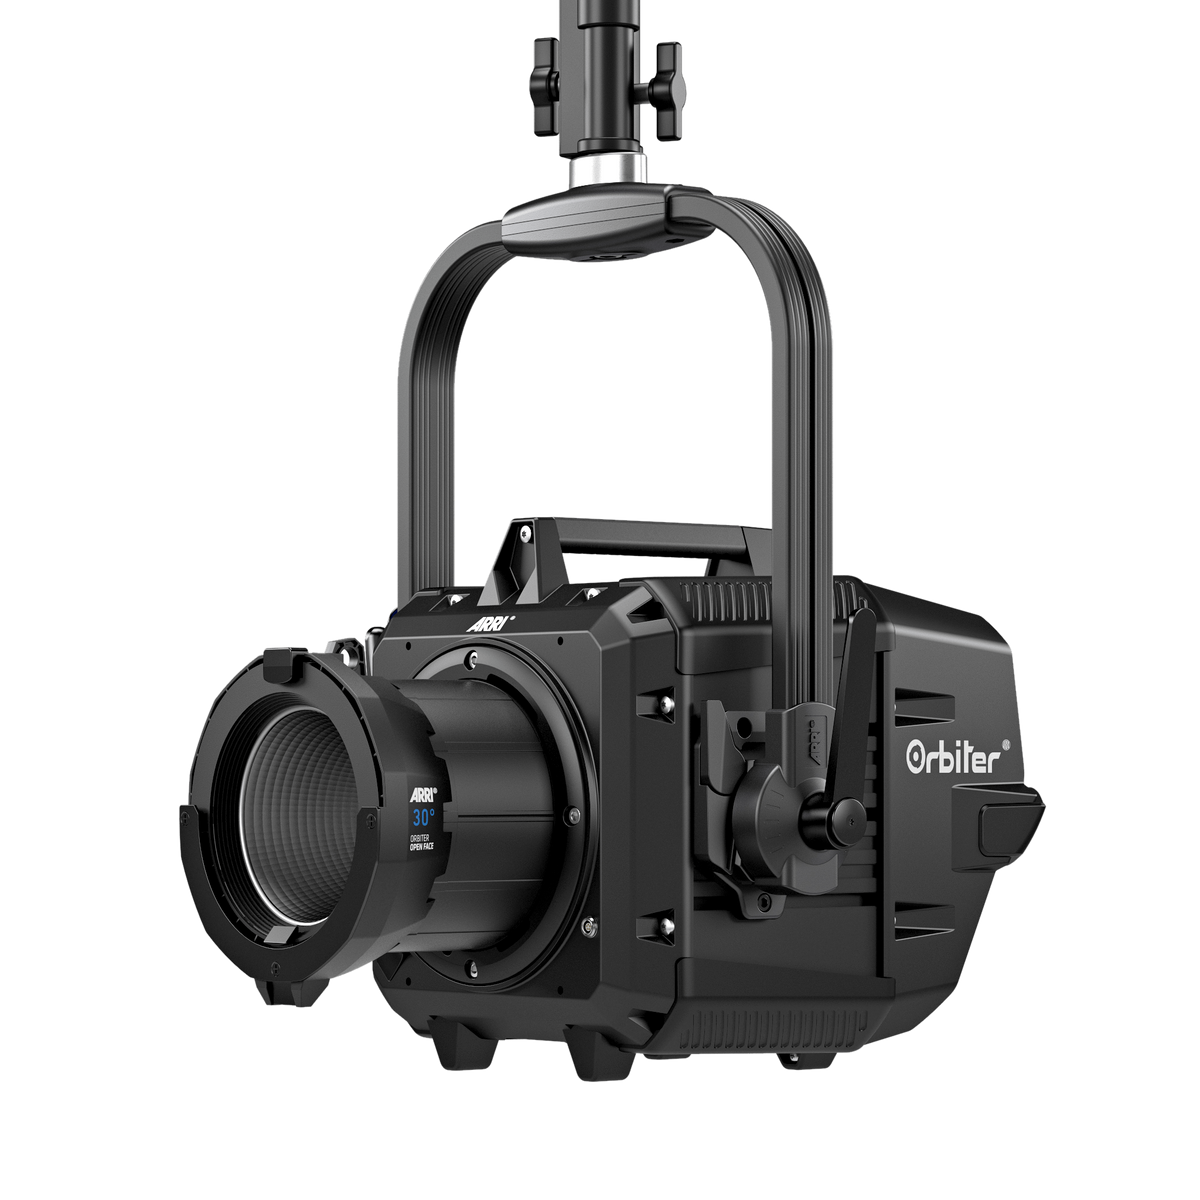 ARRI Orbiter LED Black